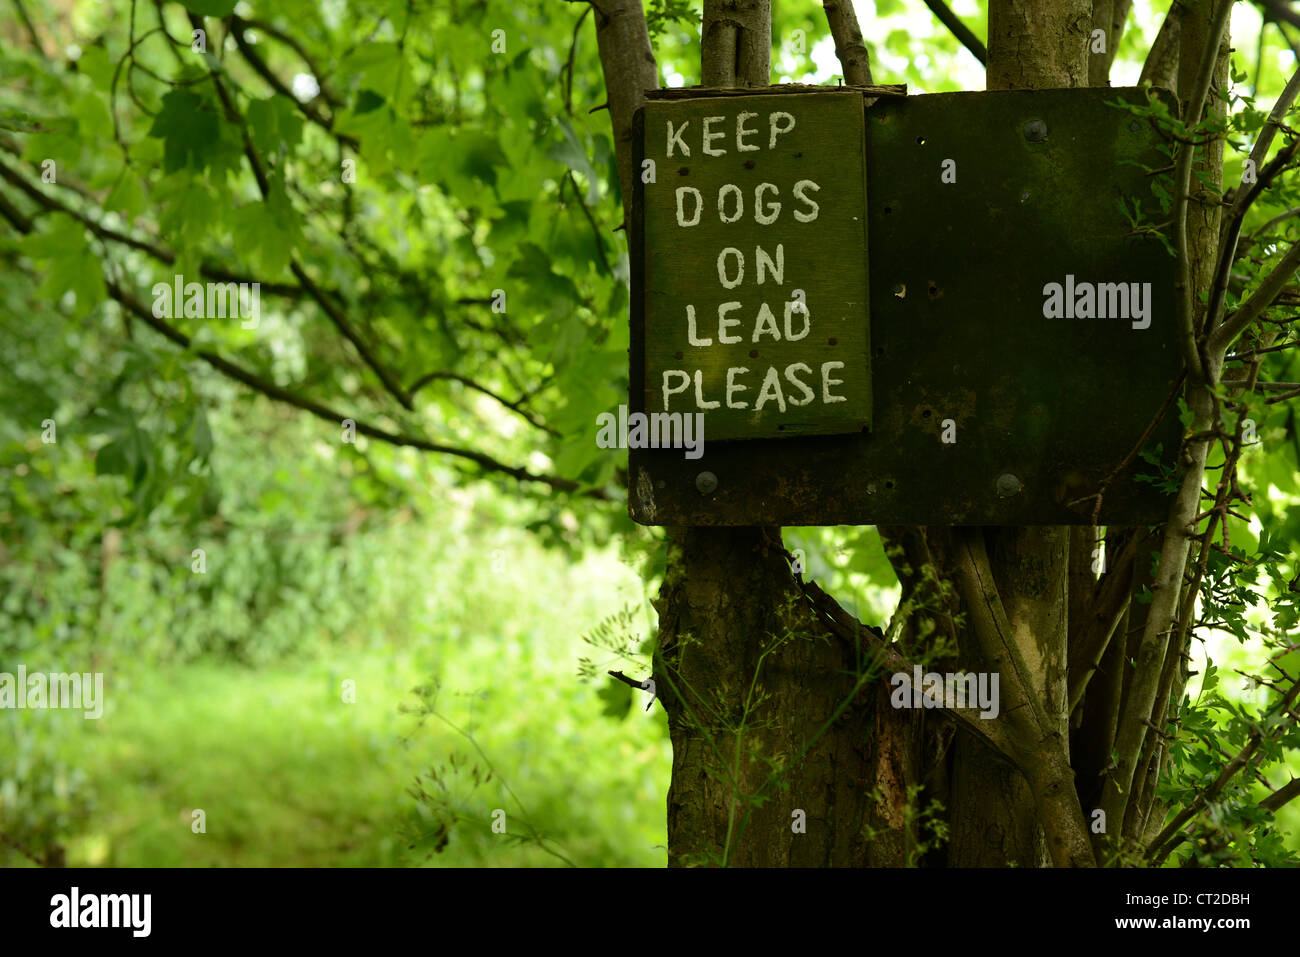 Keep dogs on lead. Signpost on a sheep farm - Stock Image